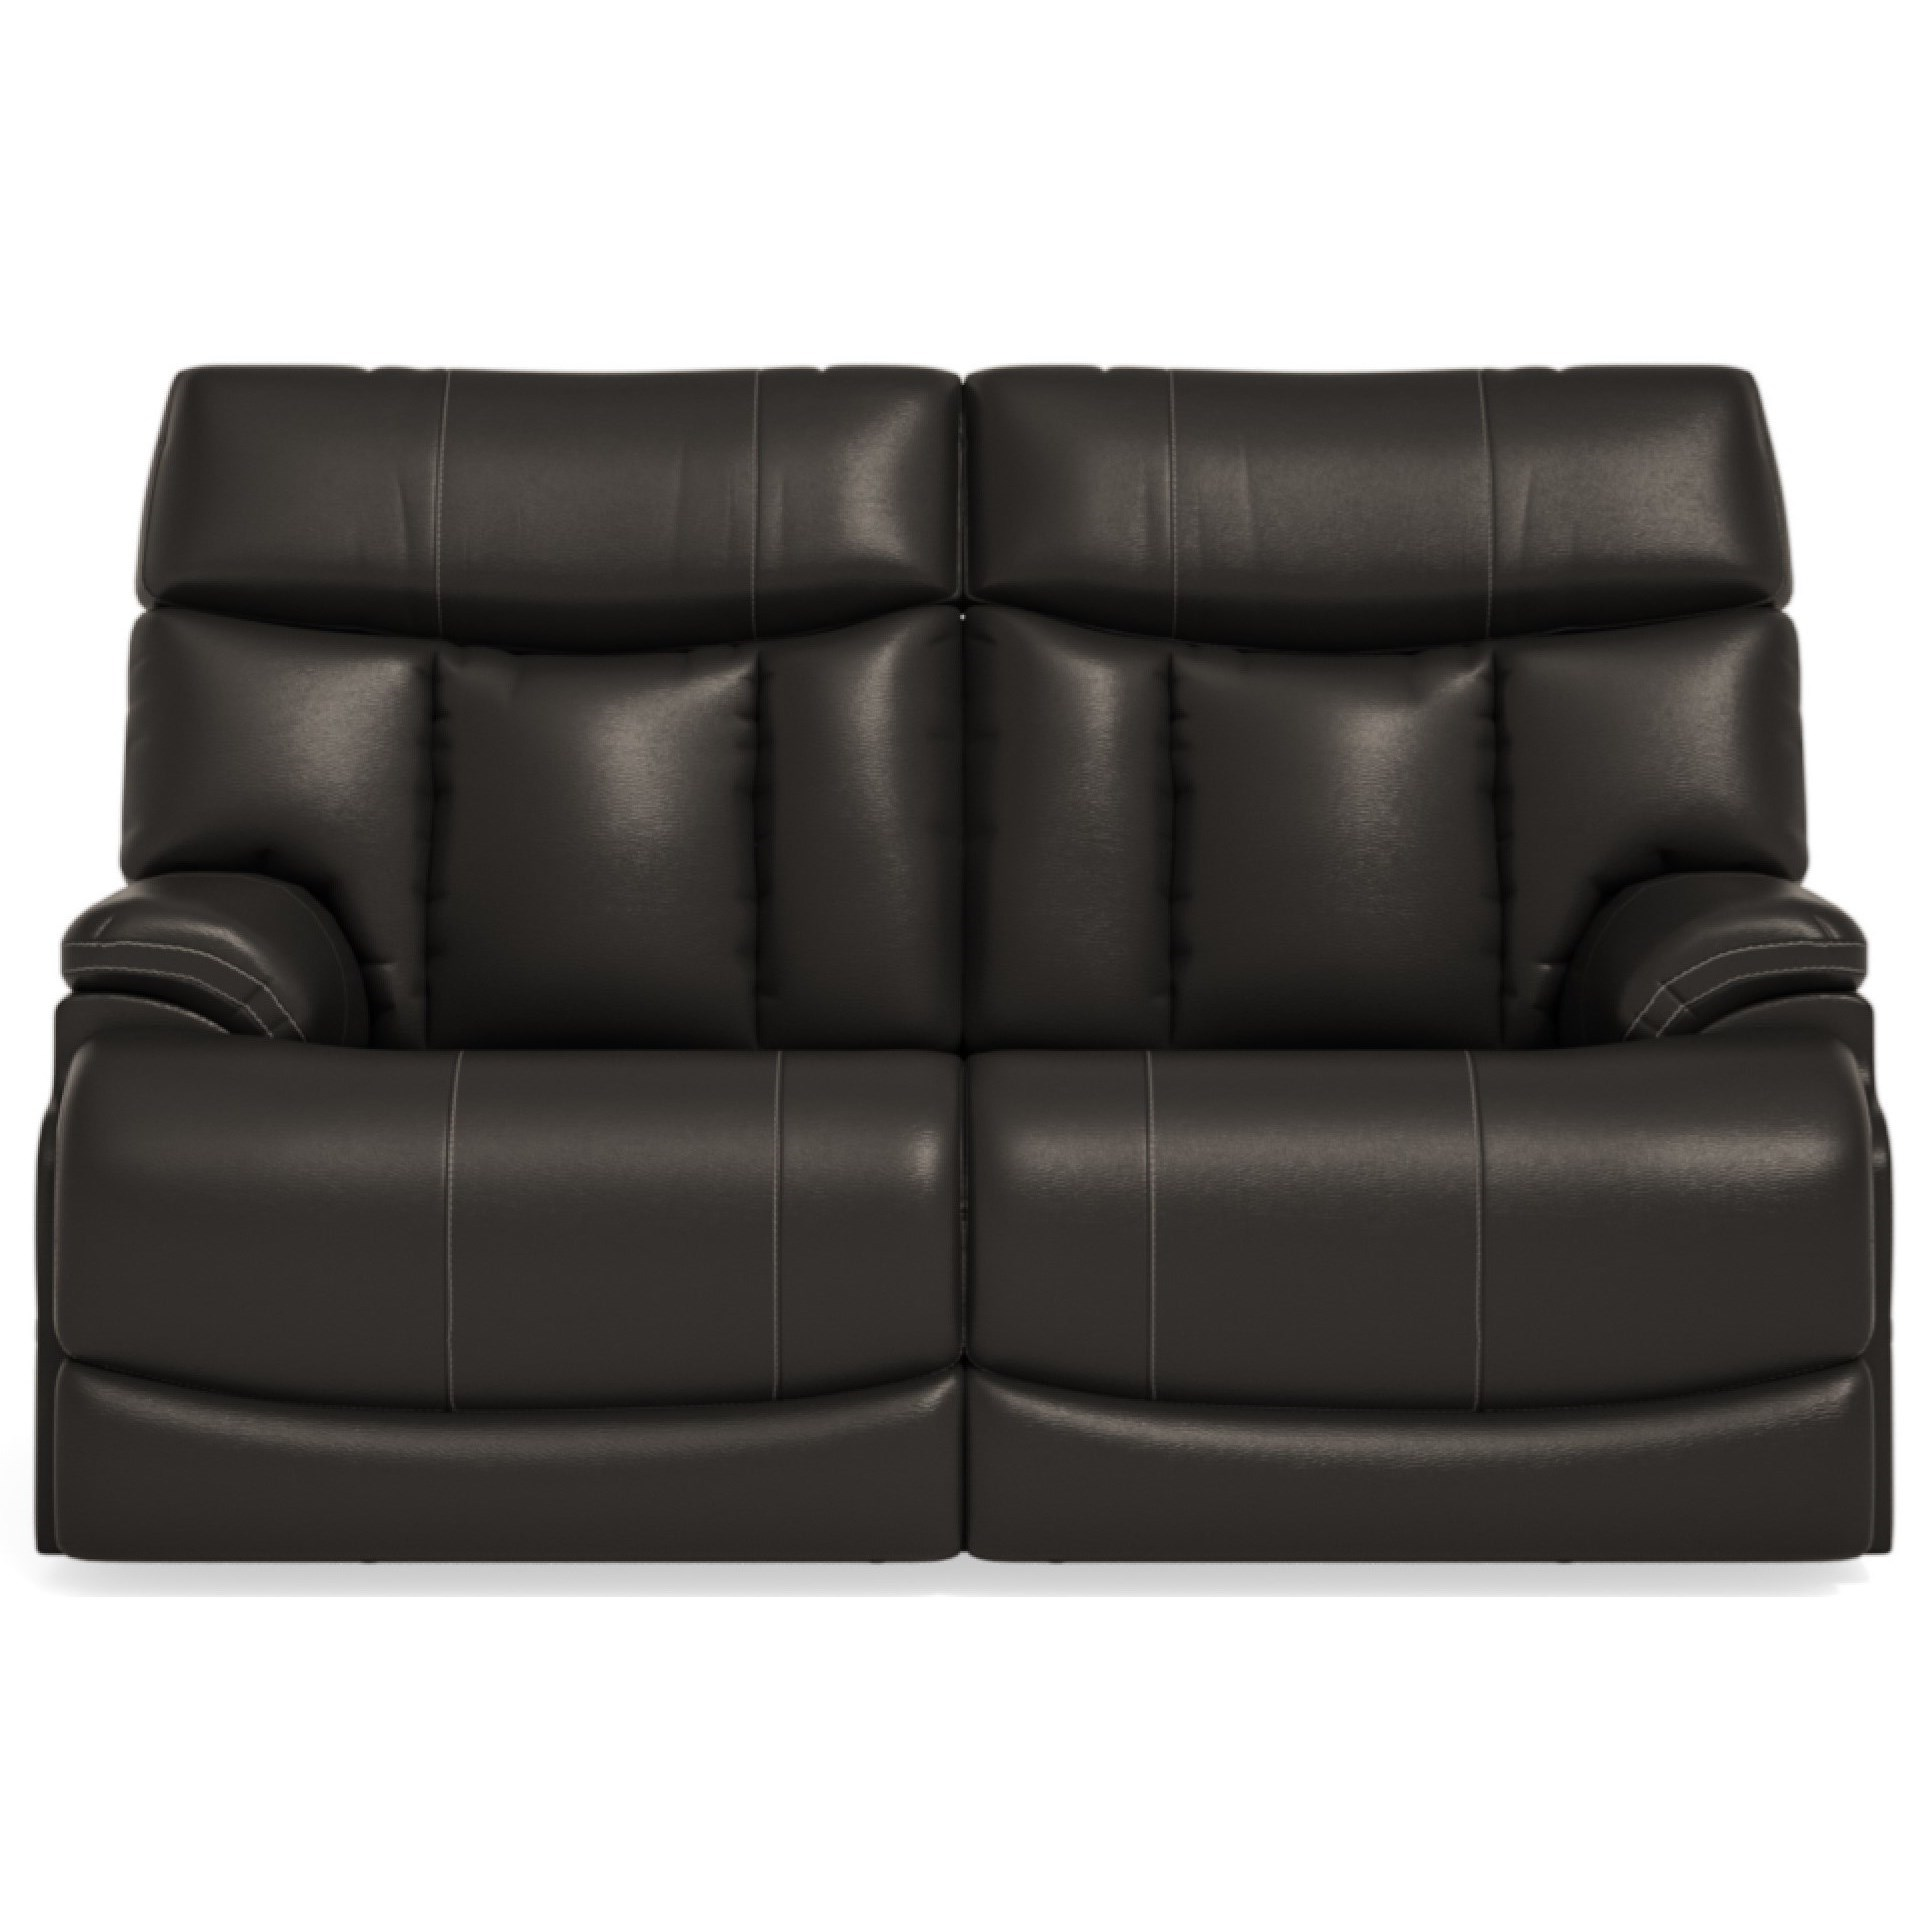 Latitudes-Clive Reclining Loveseat by Flexsteel at Walker's Furniture